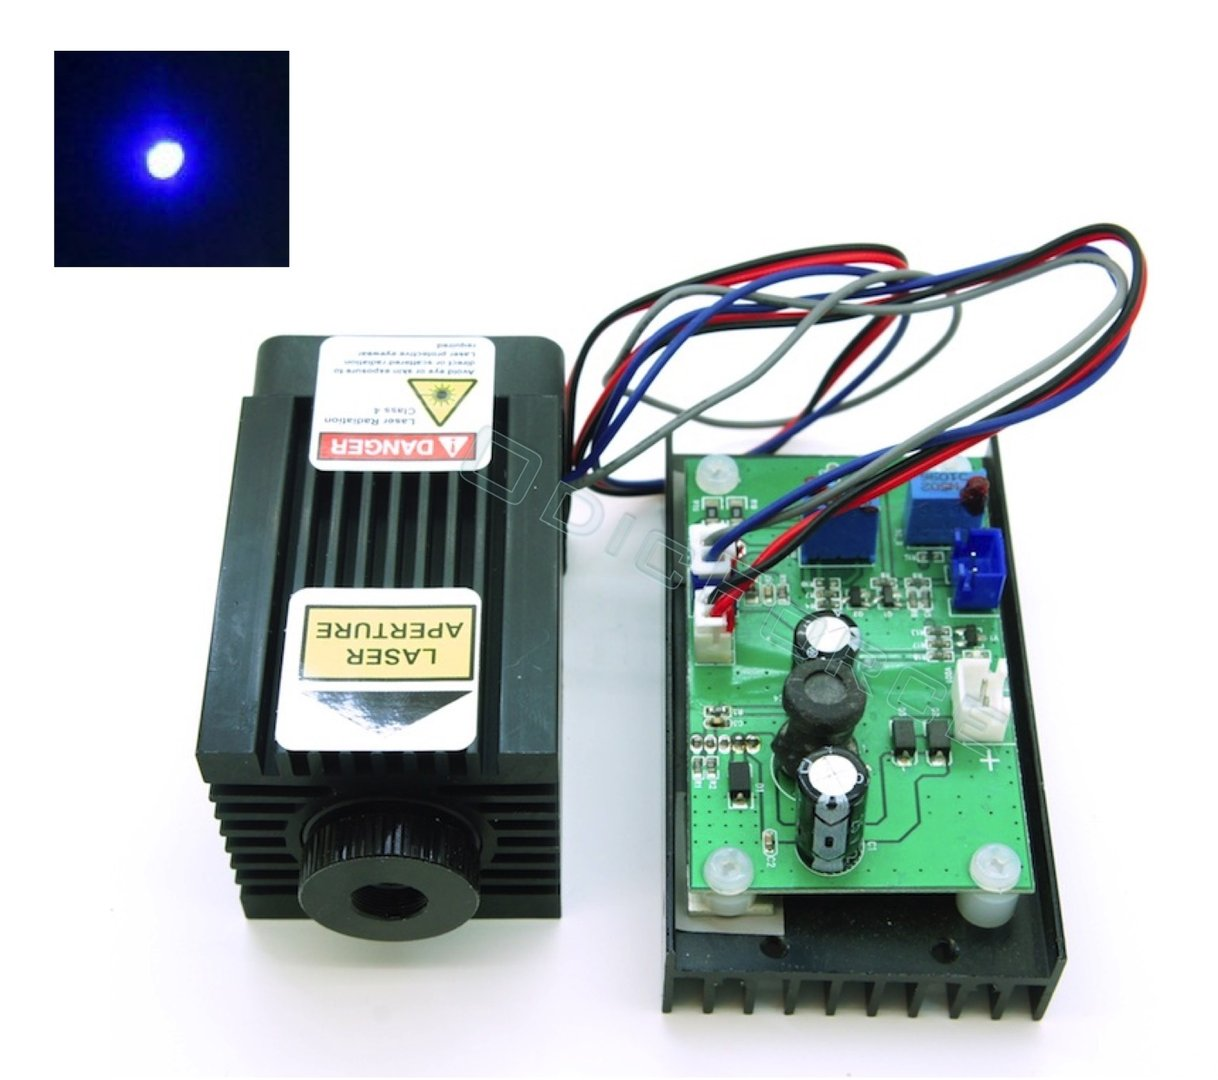 1.6W 450nm Blue TTL (PWM) Laser Module with Adjustable Focus 12V